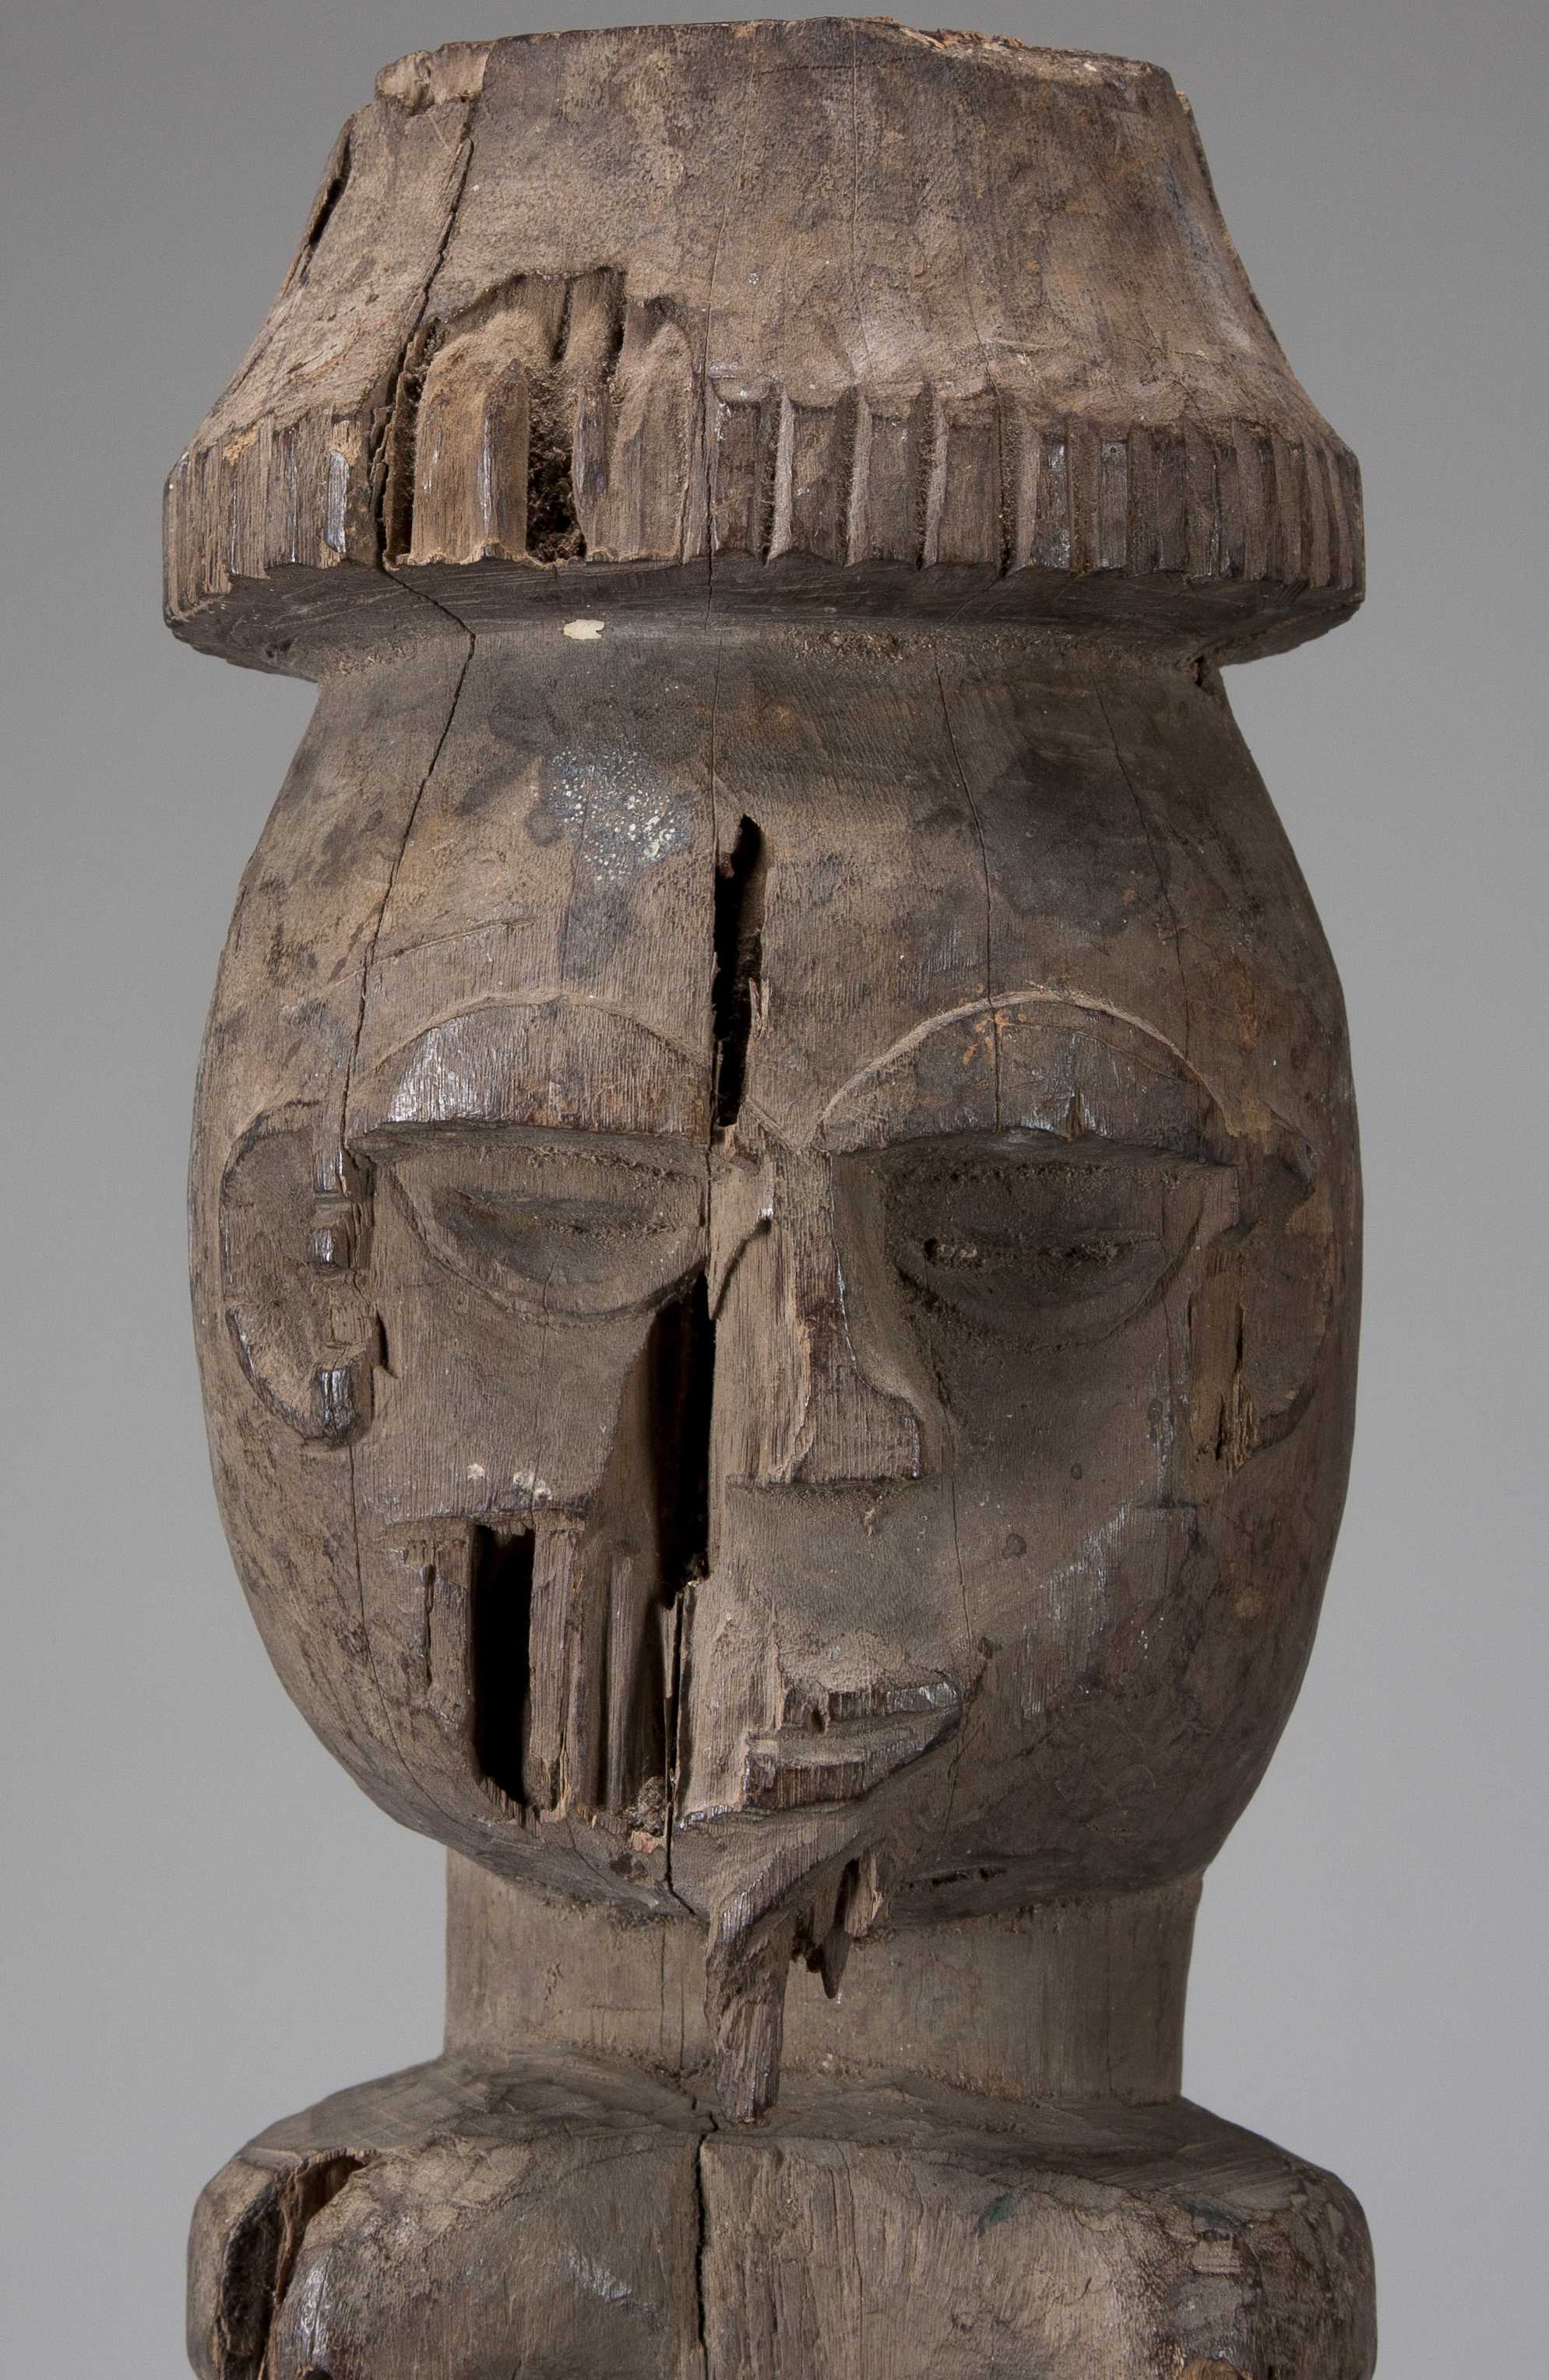 An Eroded Oron Figure